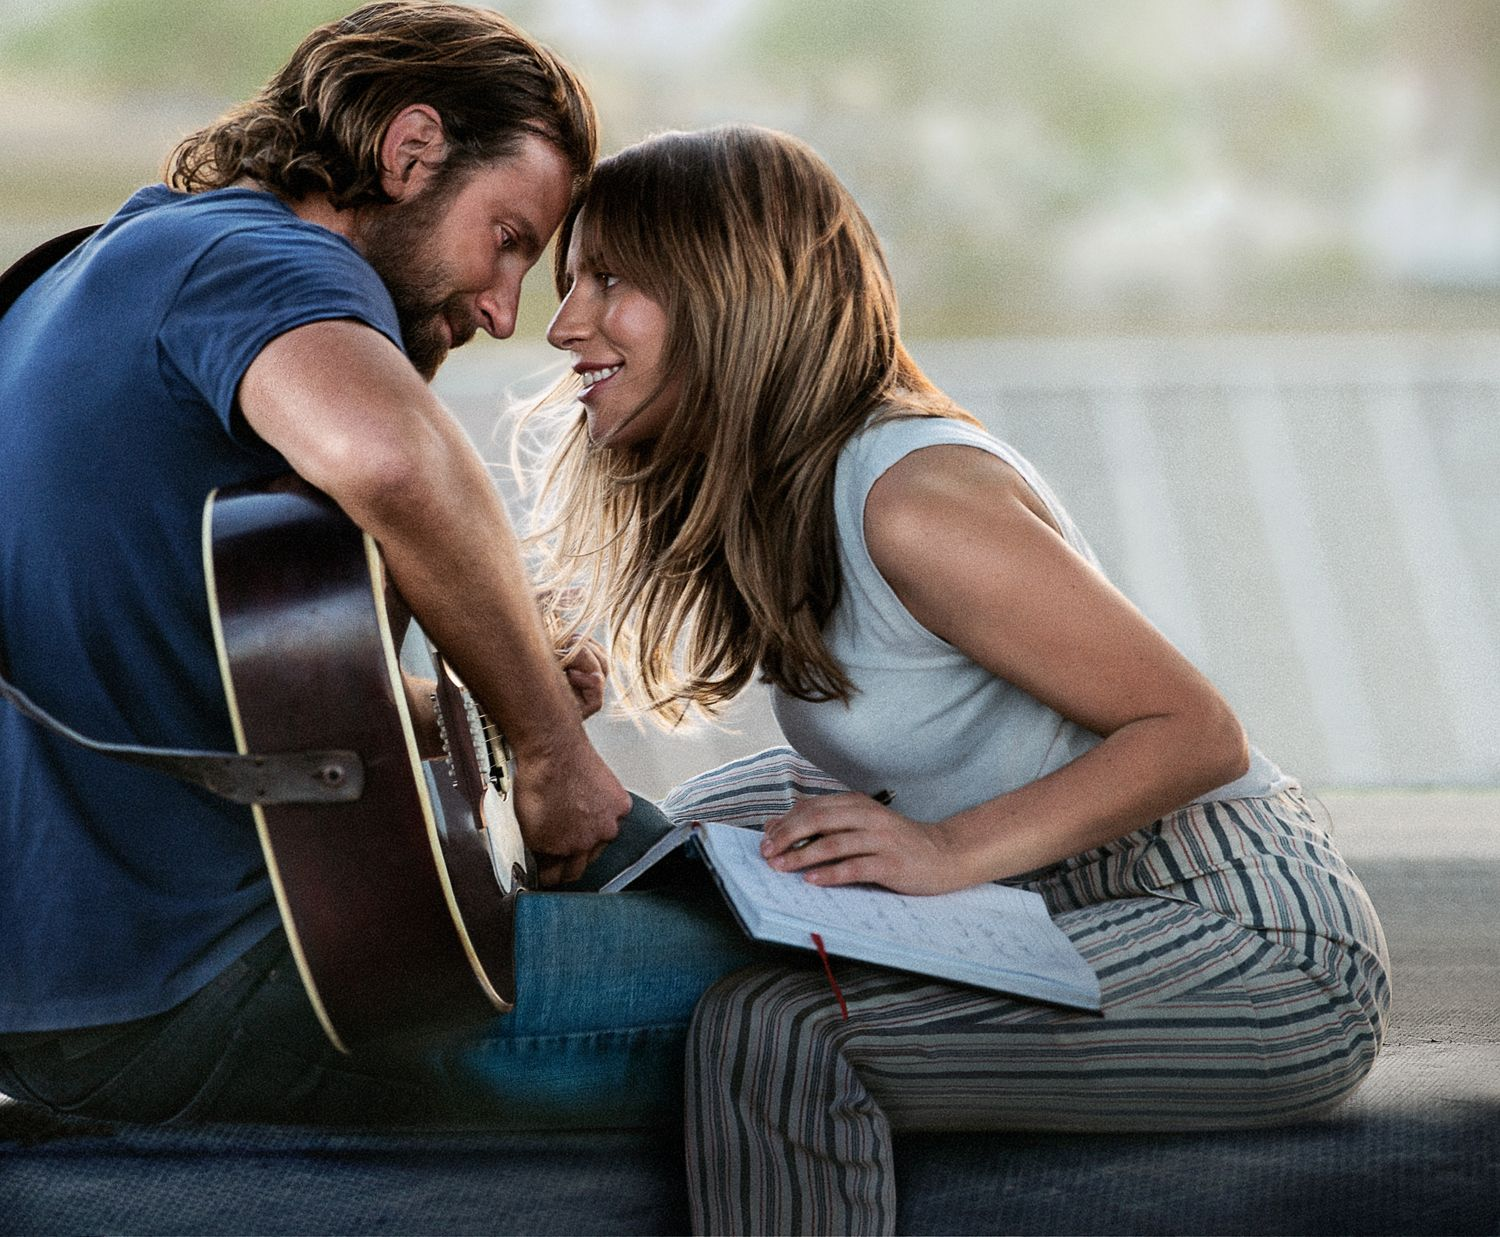 Lady Gaga sees herself in A Star is Born character